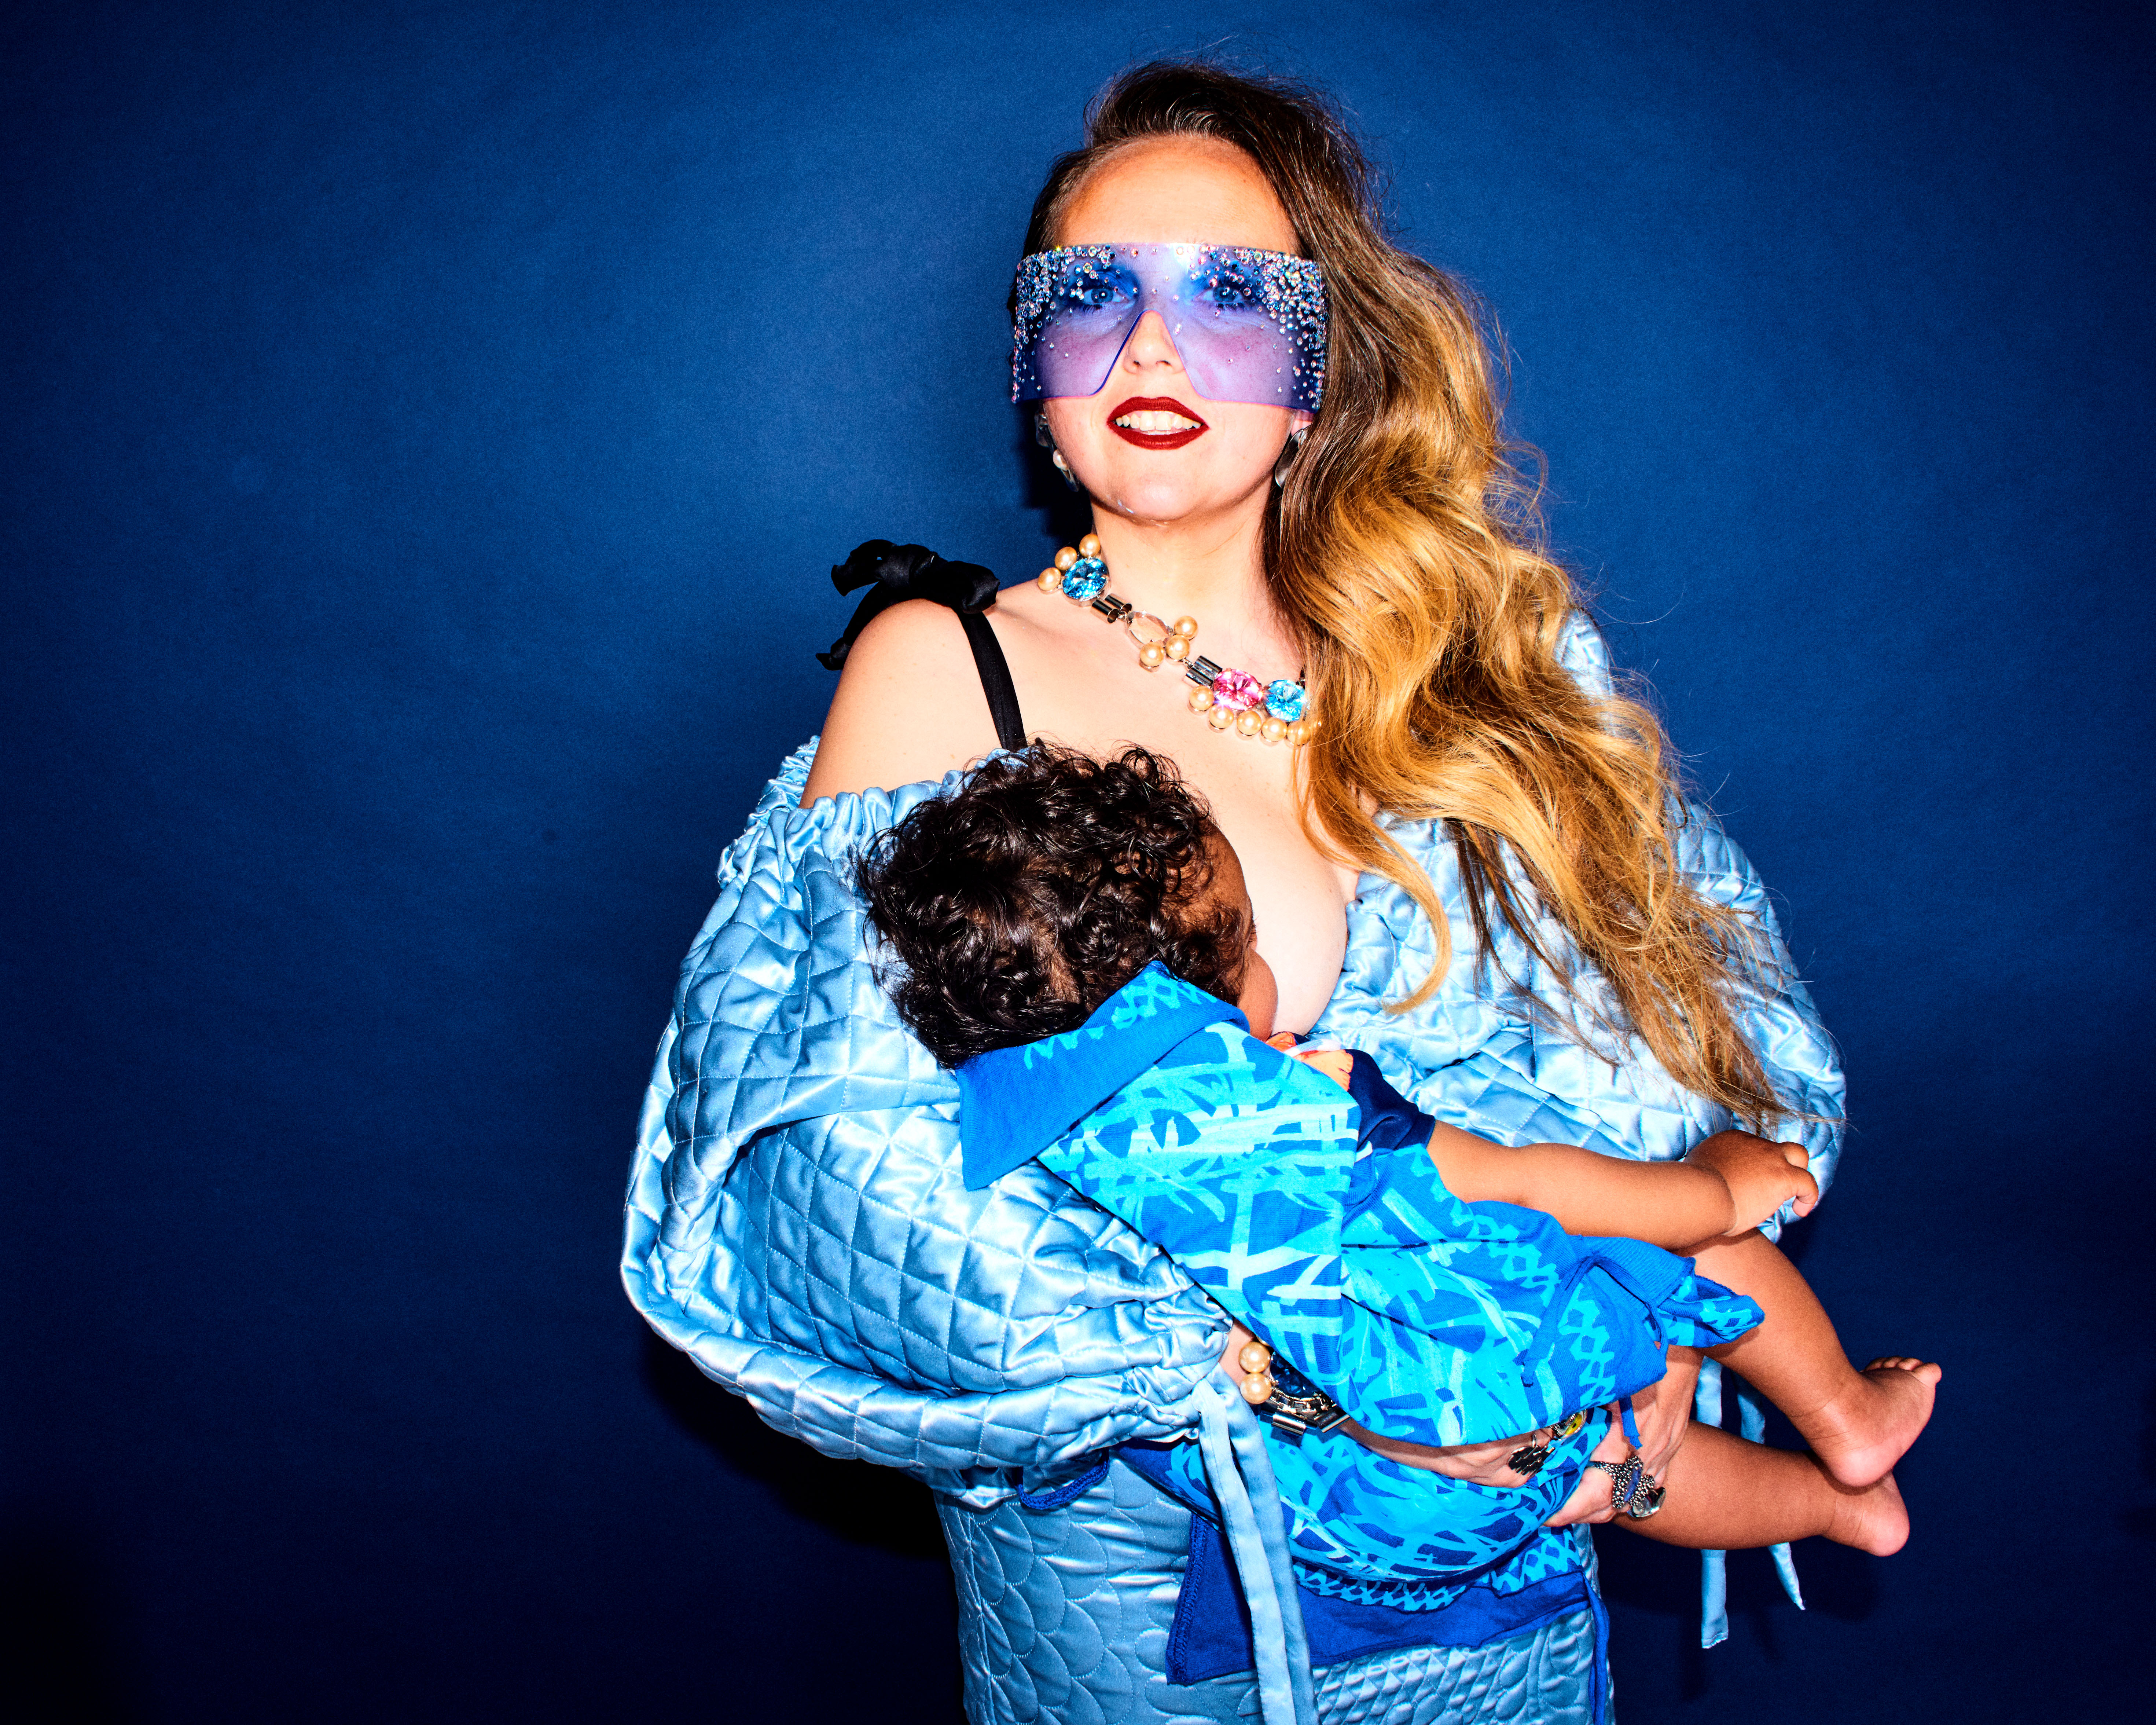 The British stylist Kim Howells with her son Indigo in the latest issue of Hunger magazine wearing a dress by Moncler.